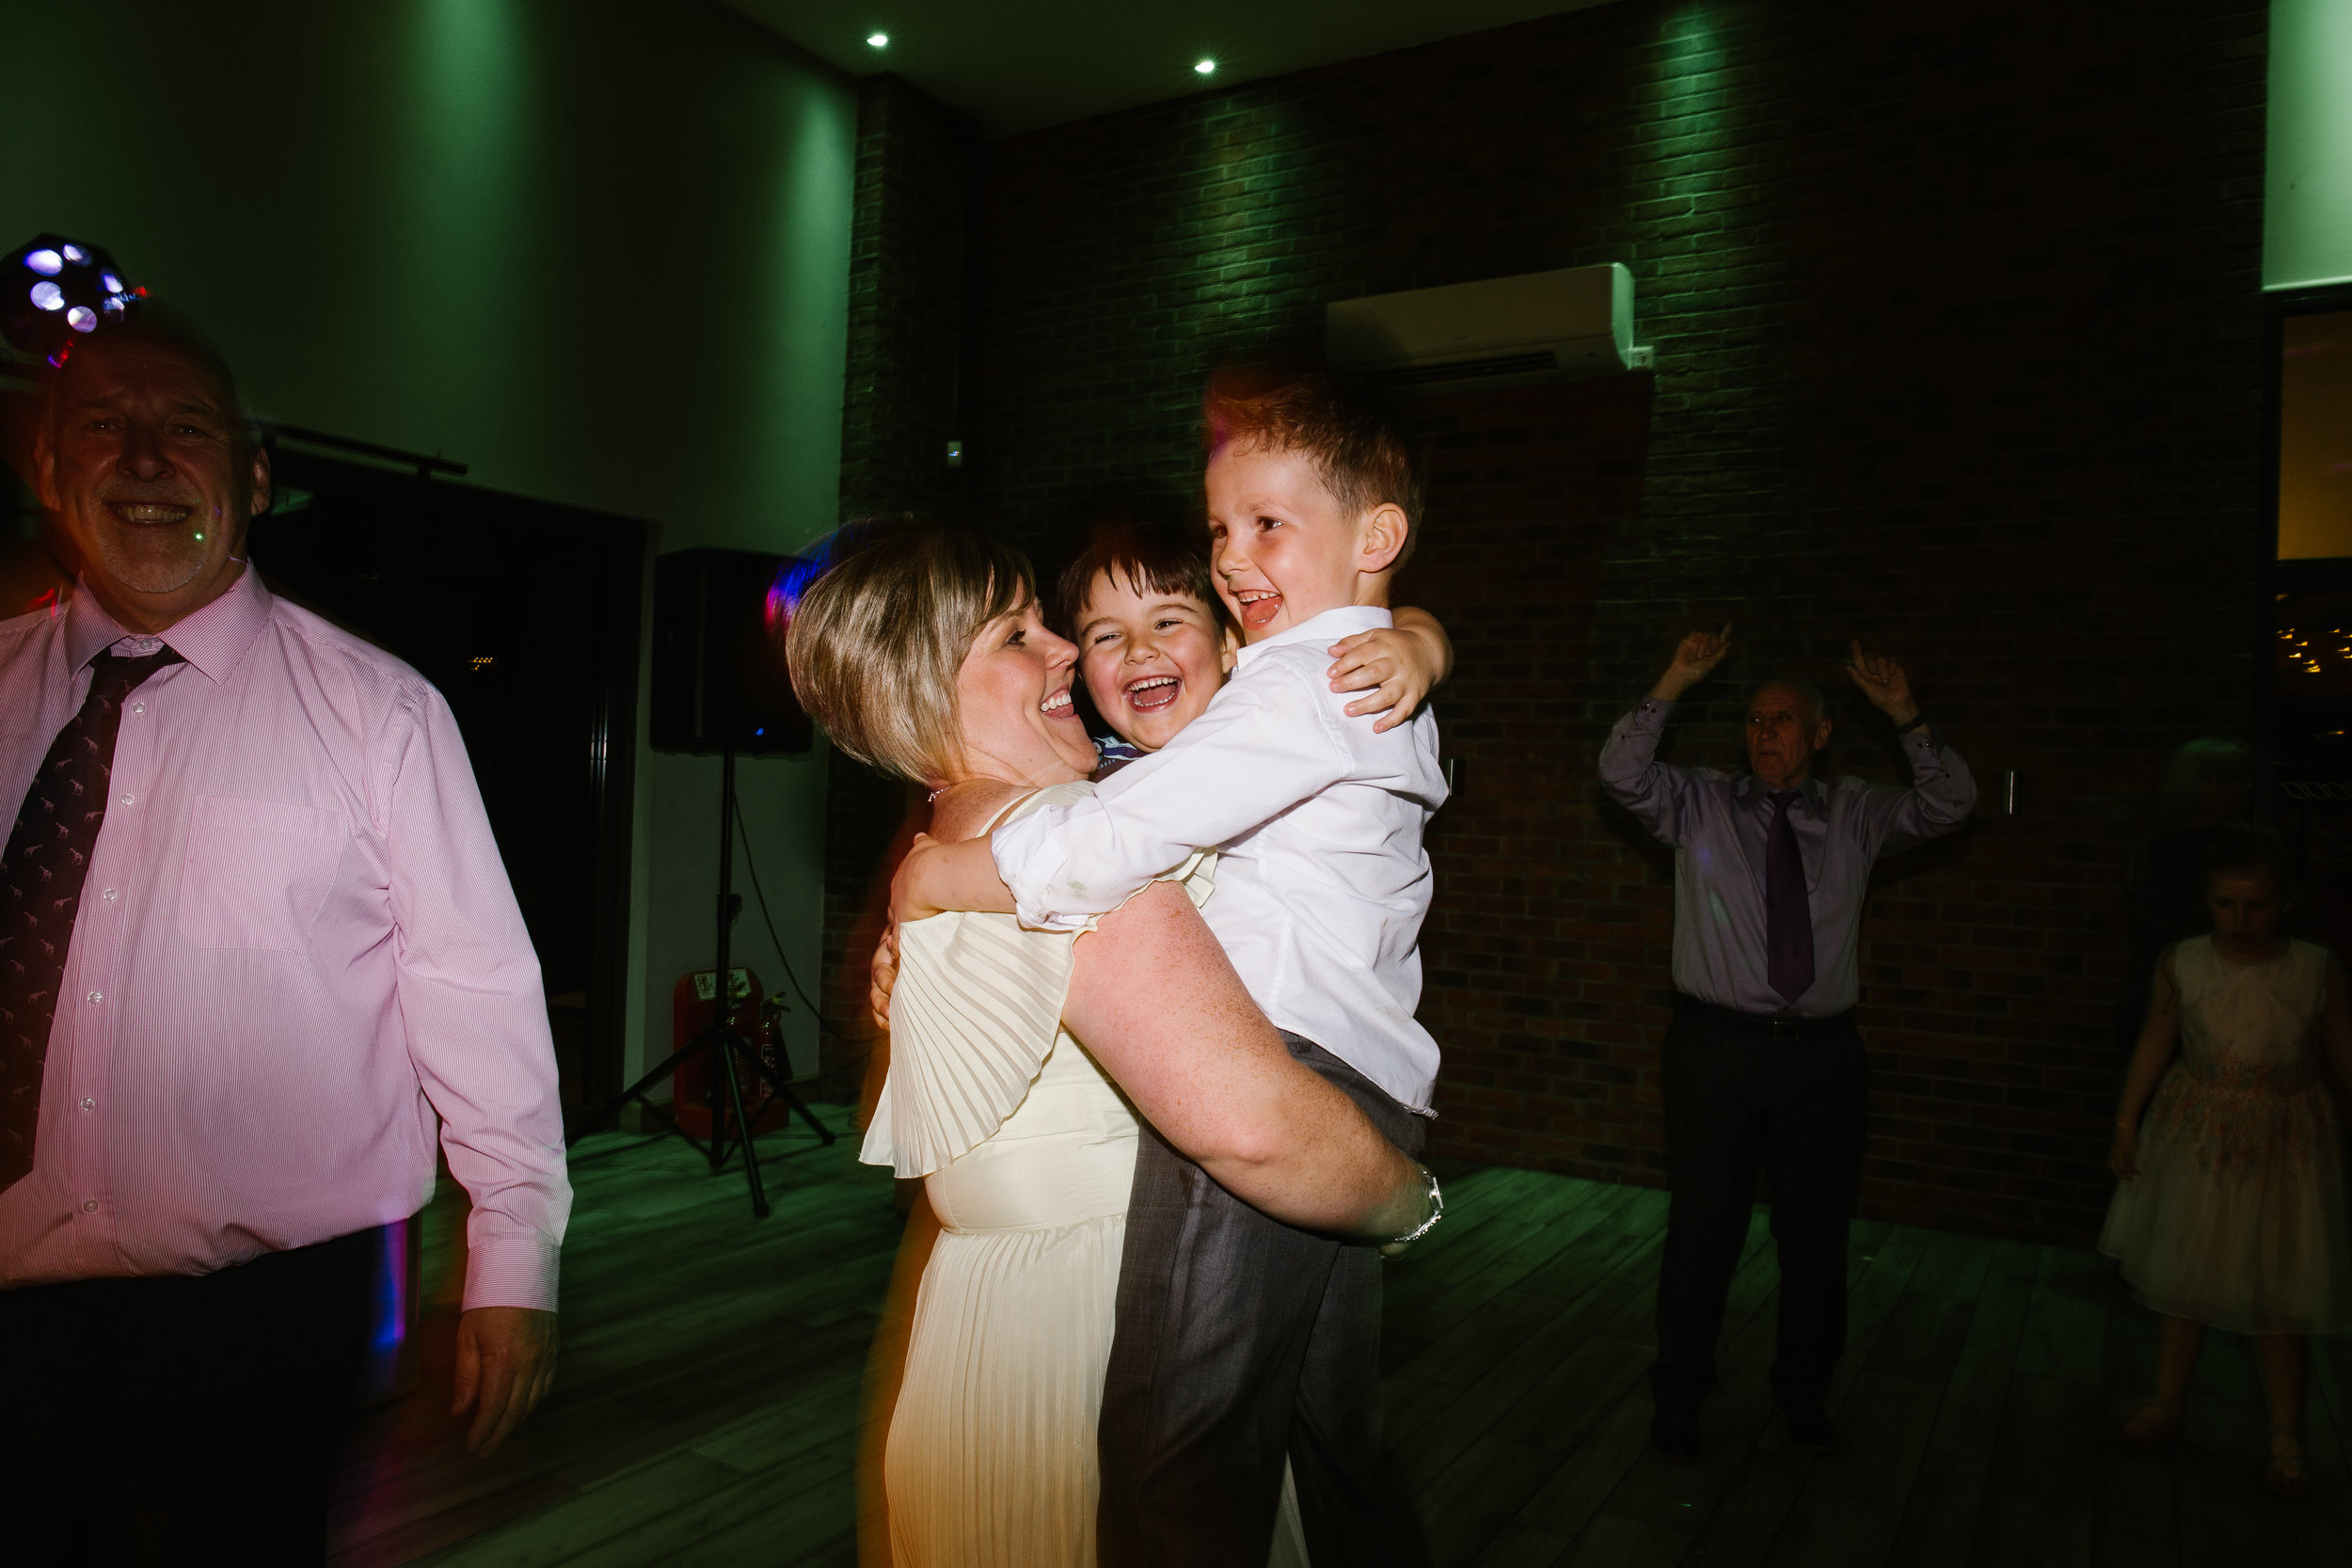 bridesmaid holding two small children as they laugh and dance together on the dance floor